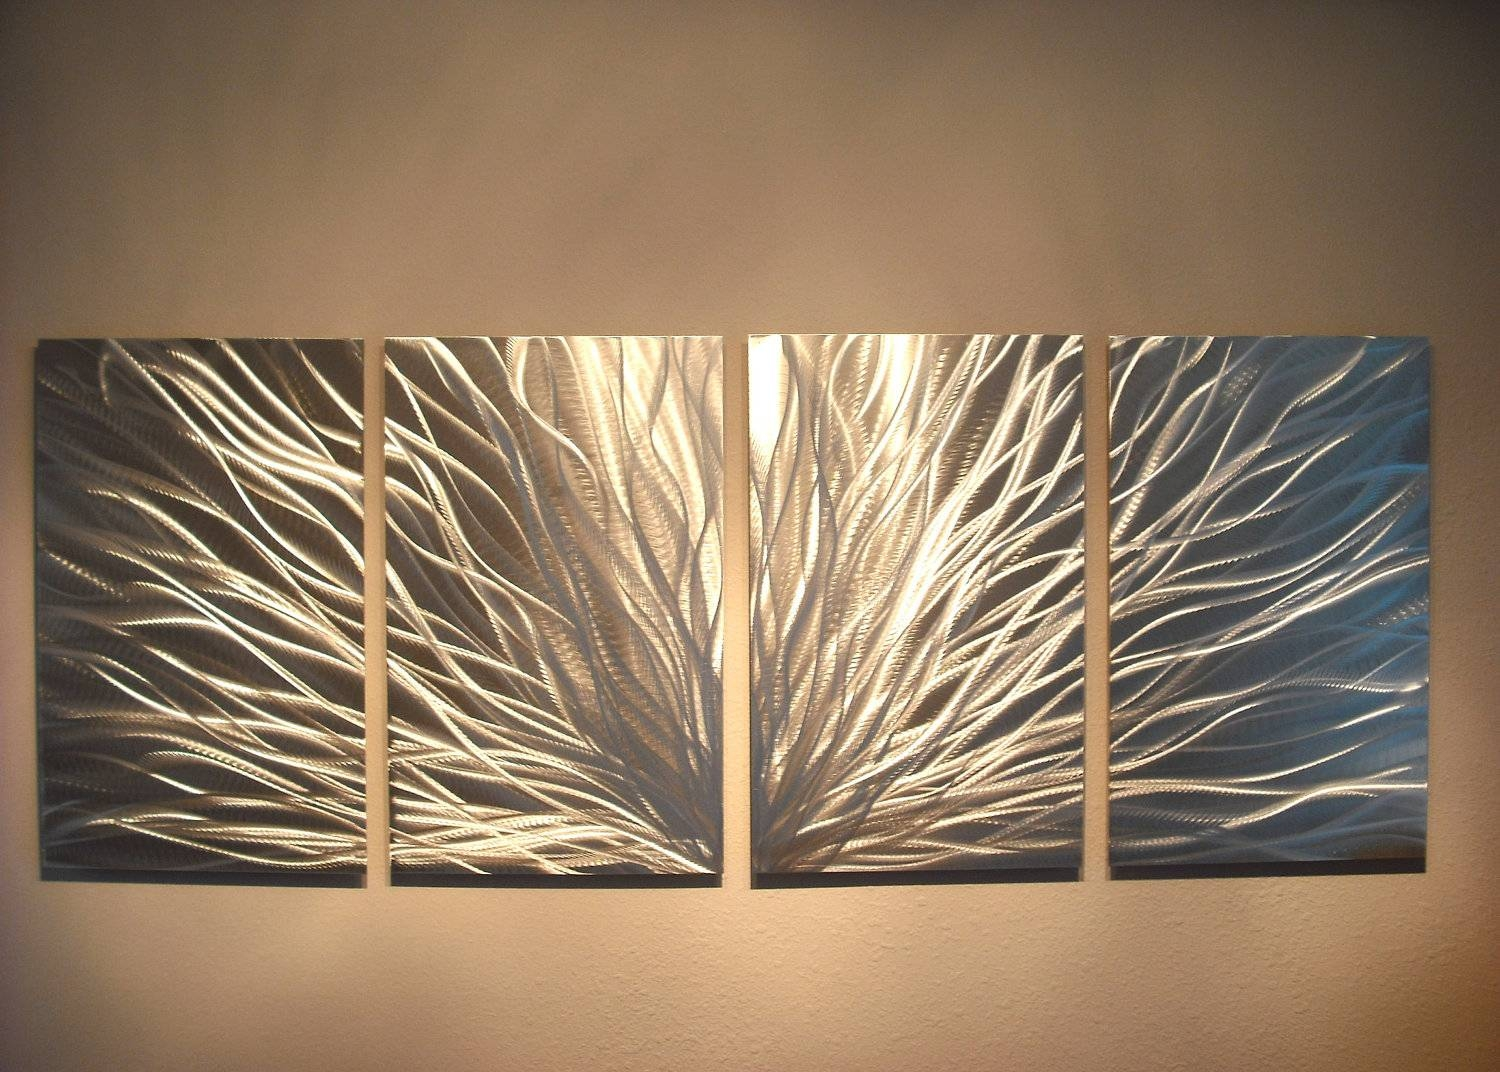 Radiance – Abstract Metal Wall Art Contemporary Modern Decor Within 2018 Black Metal Wall Art Decor (View 12 of 20)